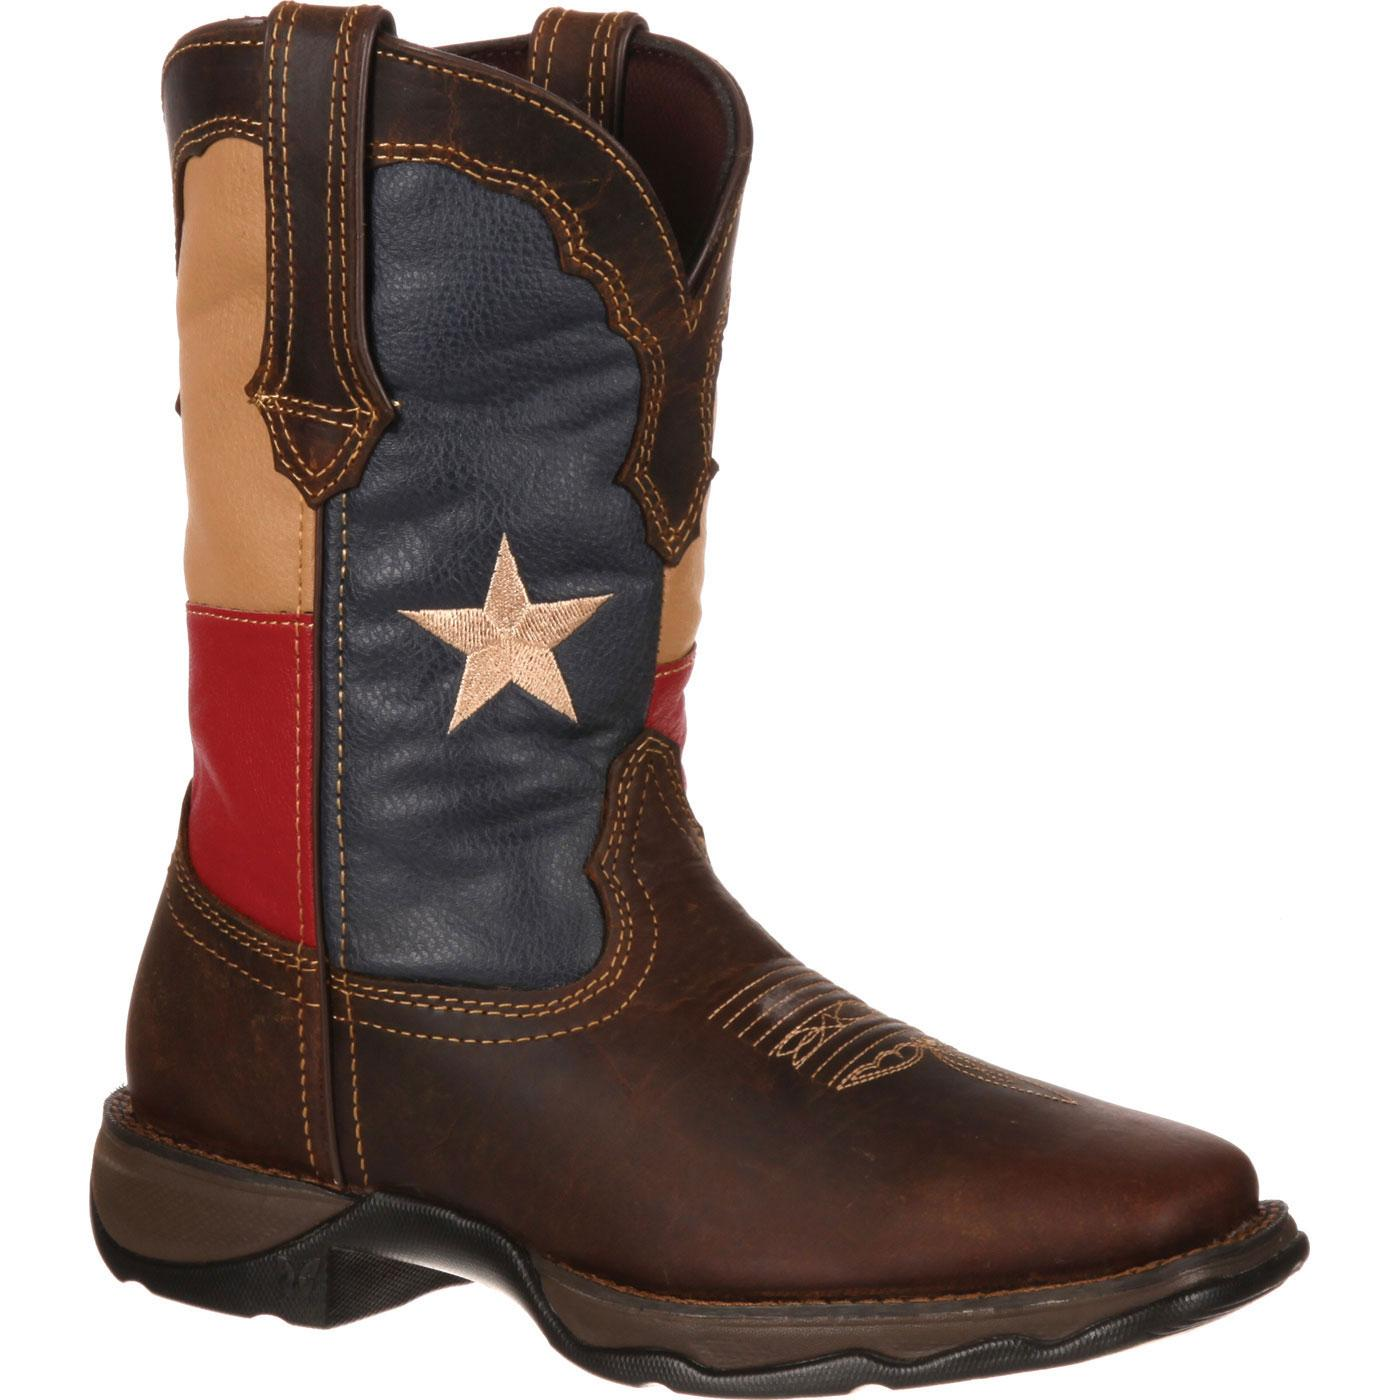 Lady Rebel by Durango: Women's Texas Flag Western Boots